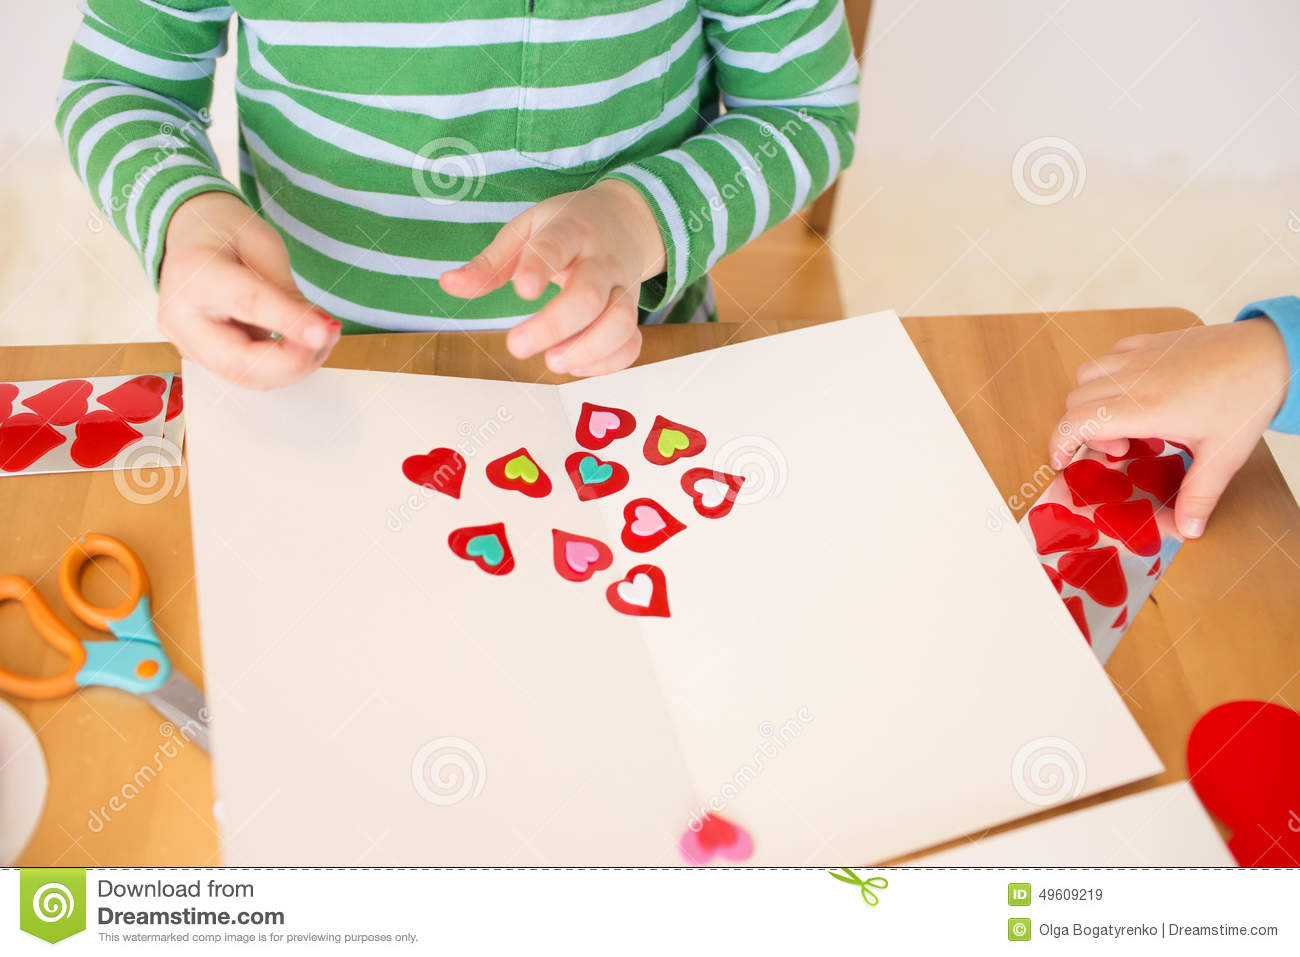 Valentines arts and crafts - Valentine S Day Hearts Kids Arts And Crafts Stock Photo